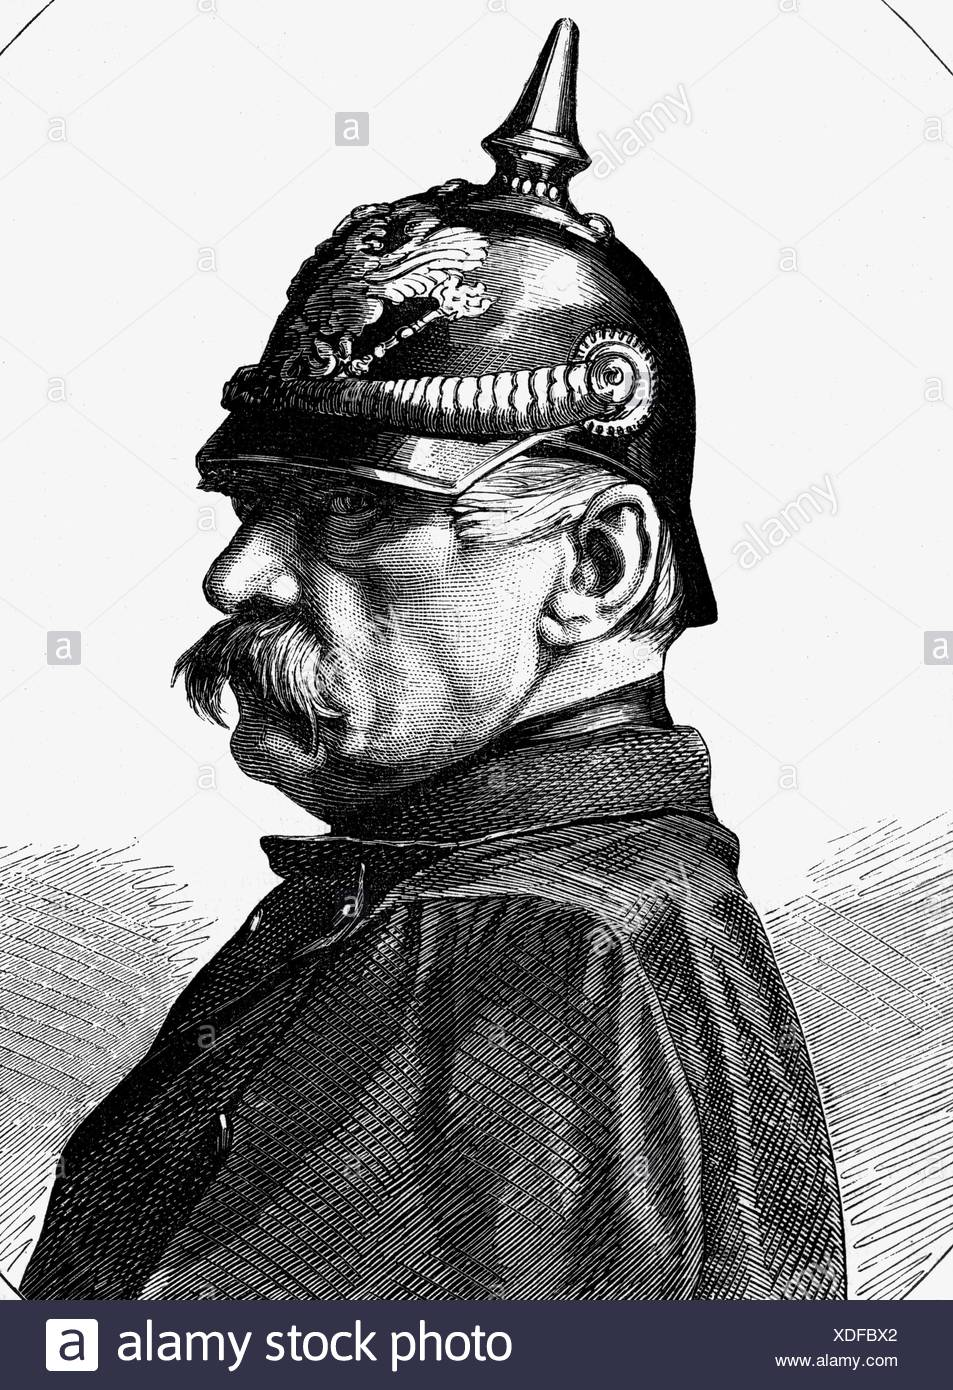 Roon, Albrecht Theodor Graf von, 30.4.1803 - 23.2.1879, Prussian general, Minister of War 1859 - 1873, portrait, wood engraving, 1887, , Additional-Rights-Clearances-NA - Stock Image